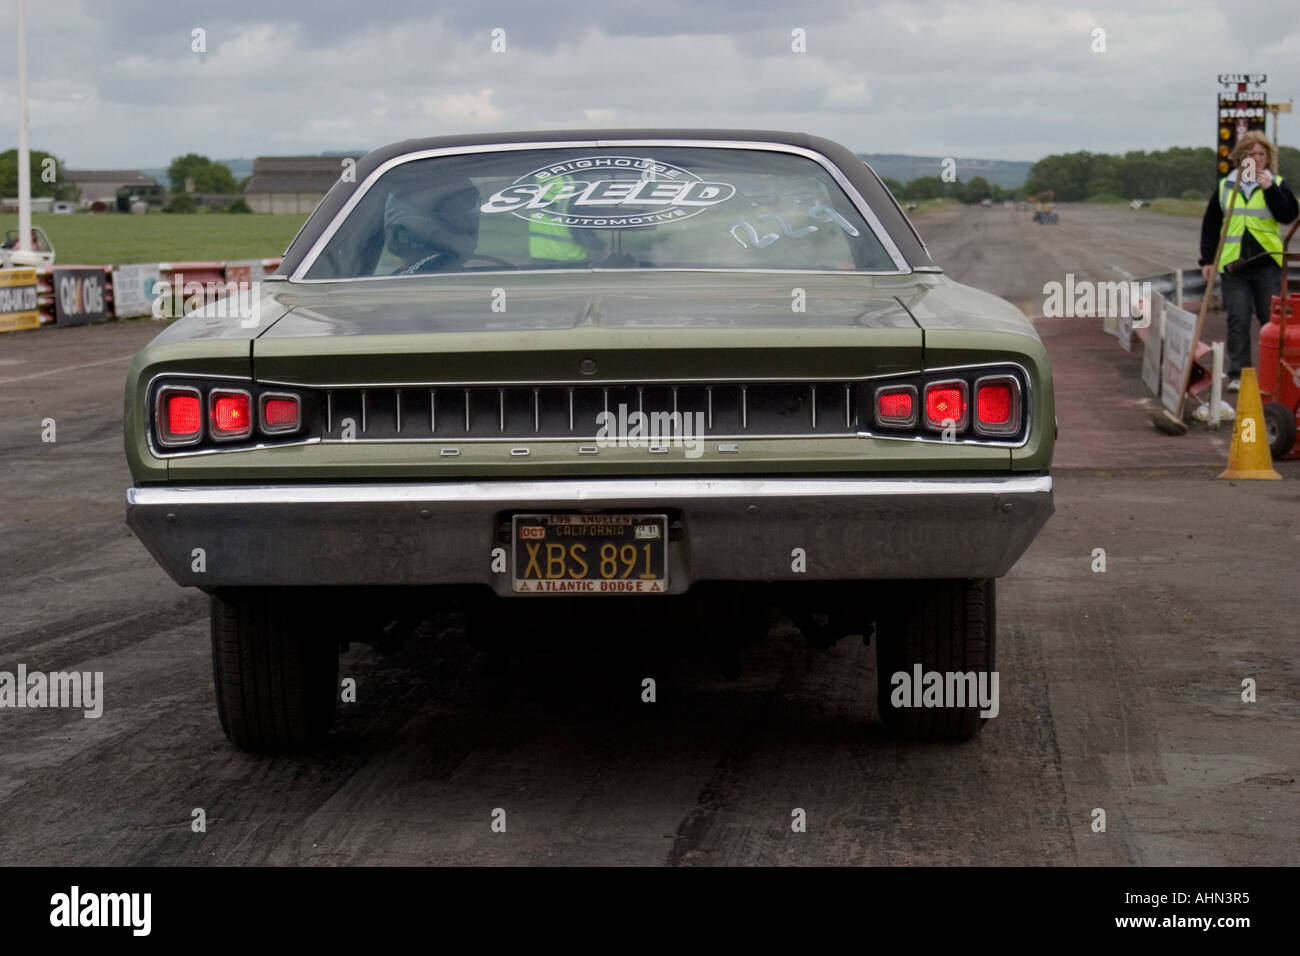 Rear View Of American Muscle Car Aproaching Start Line At Drag Race